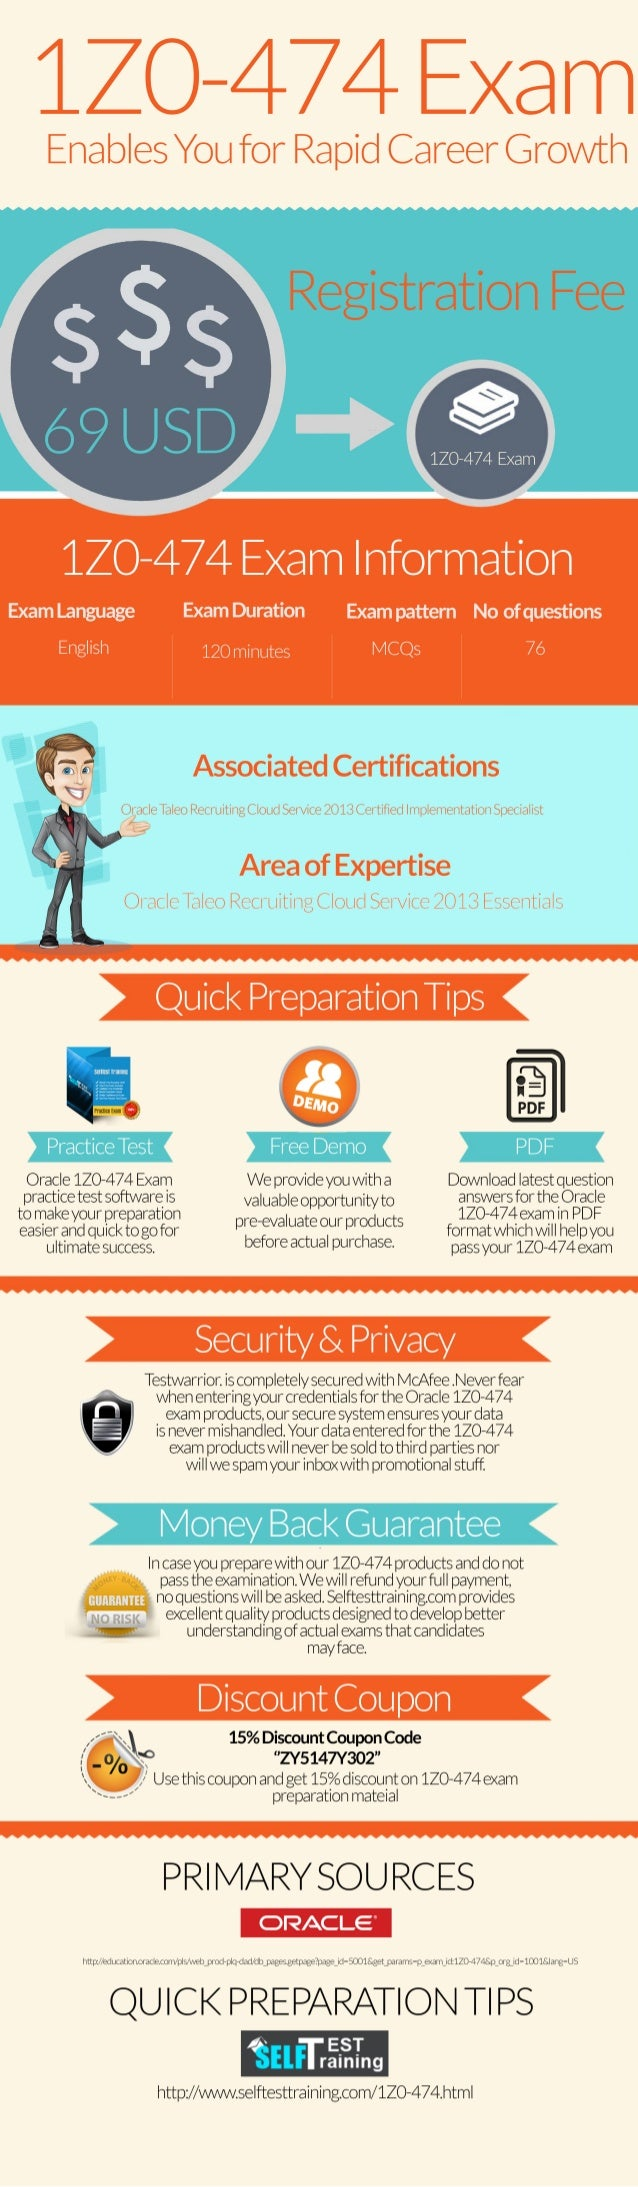 Get 1z0-474 exam real questions & practice test [infographic]